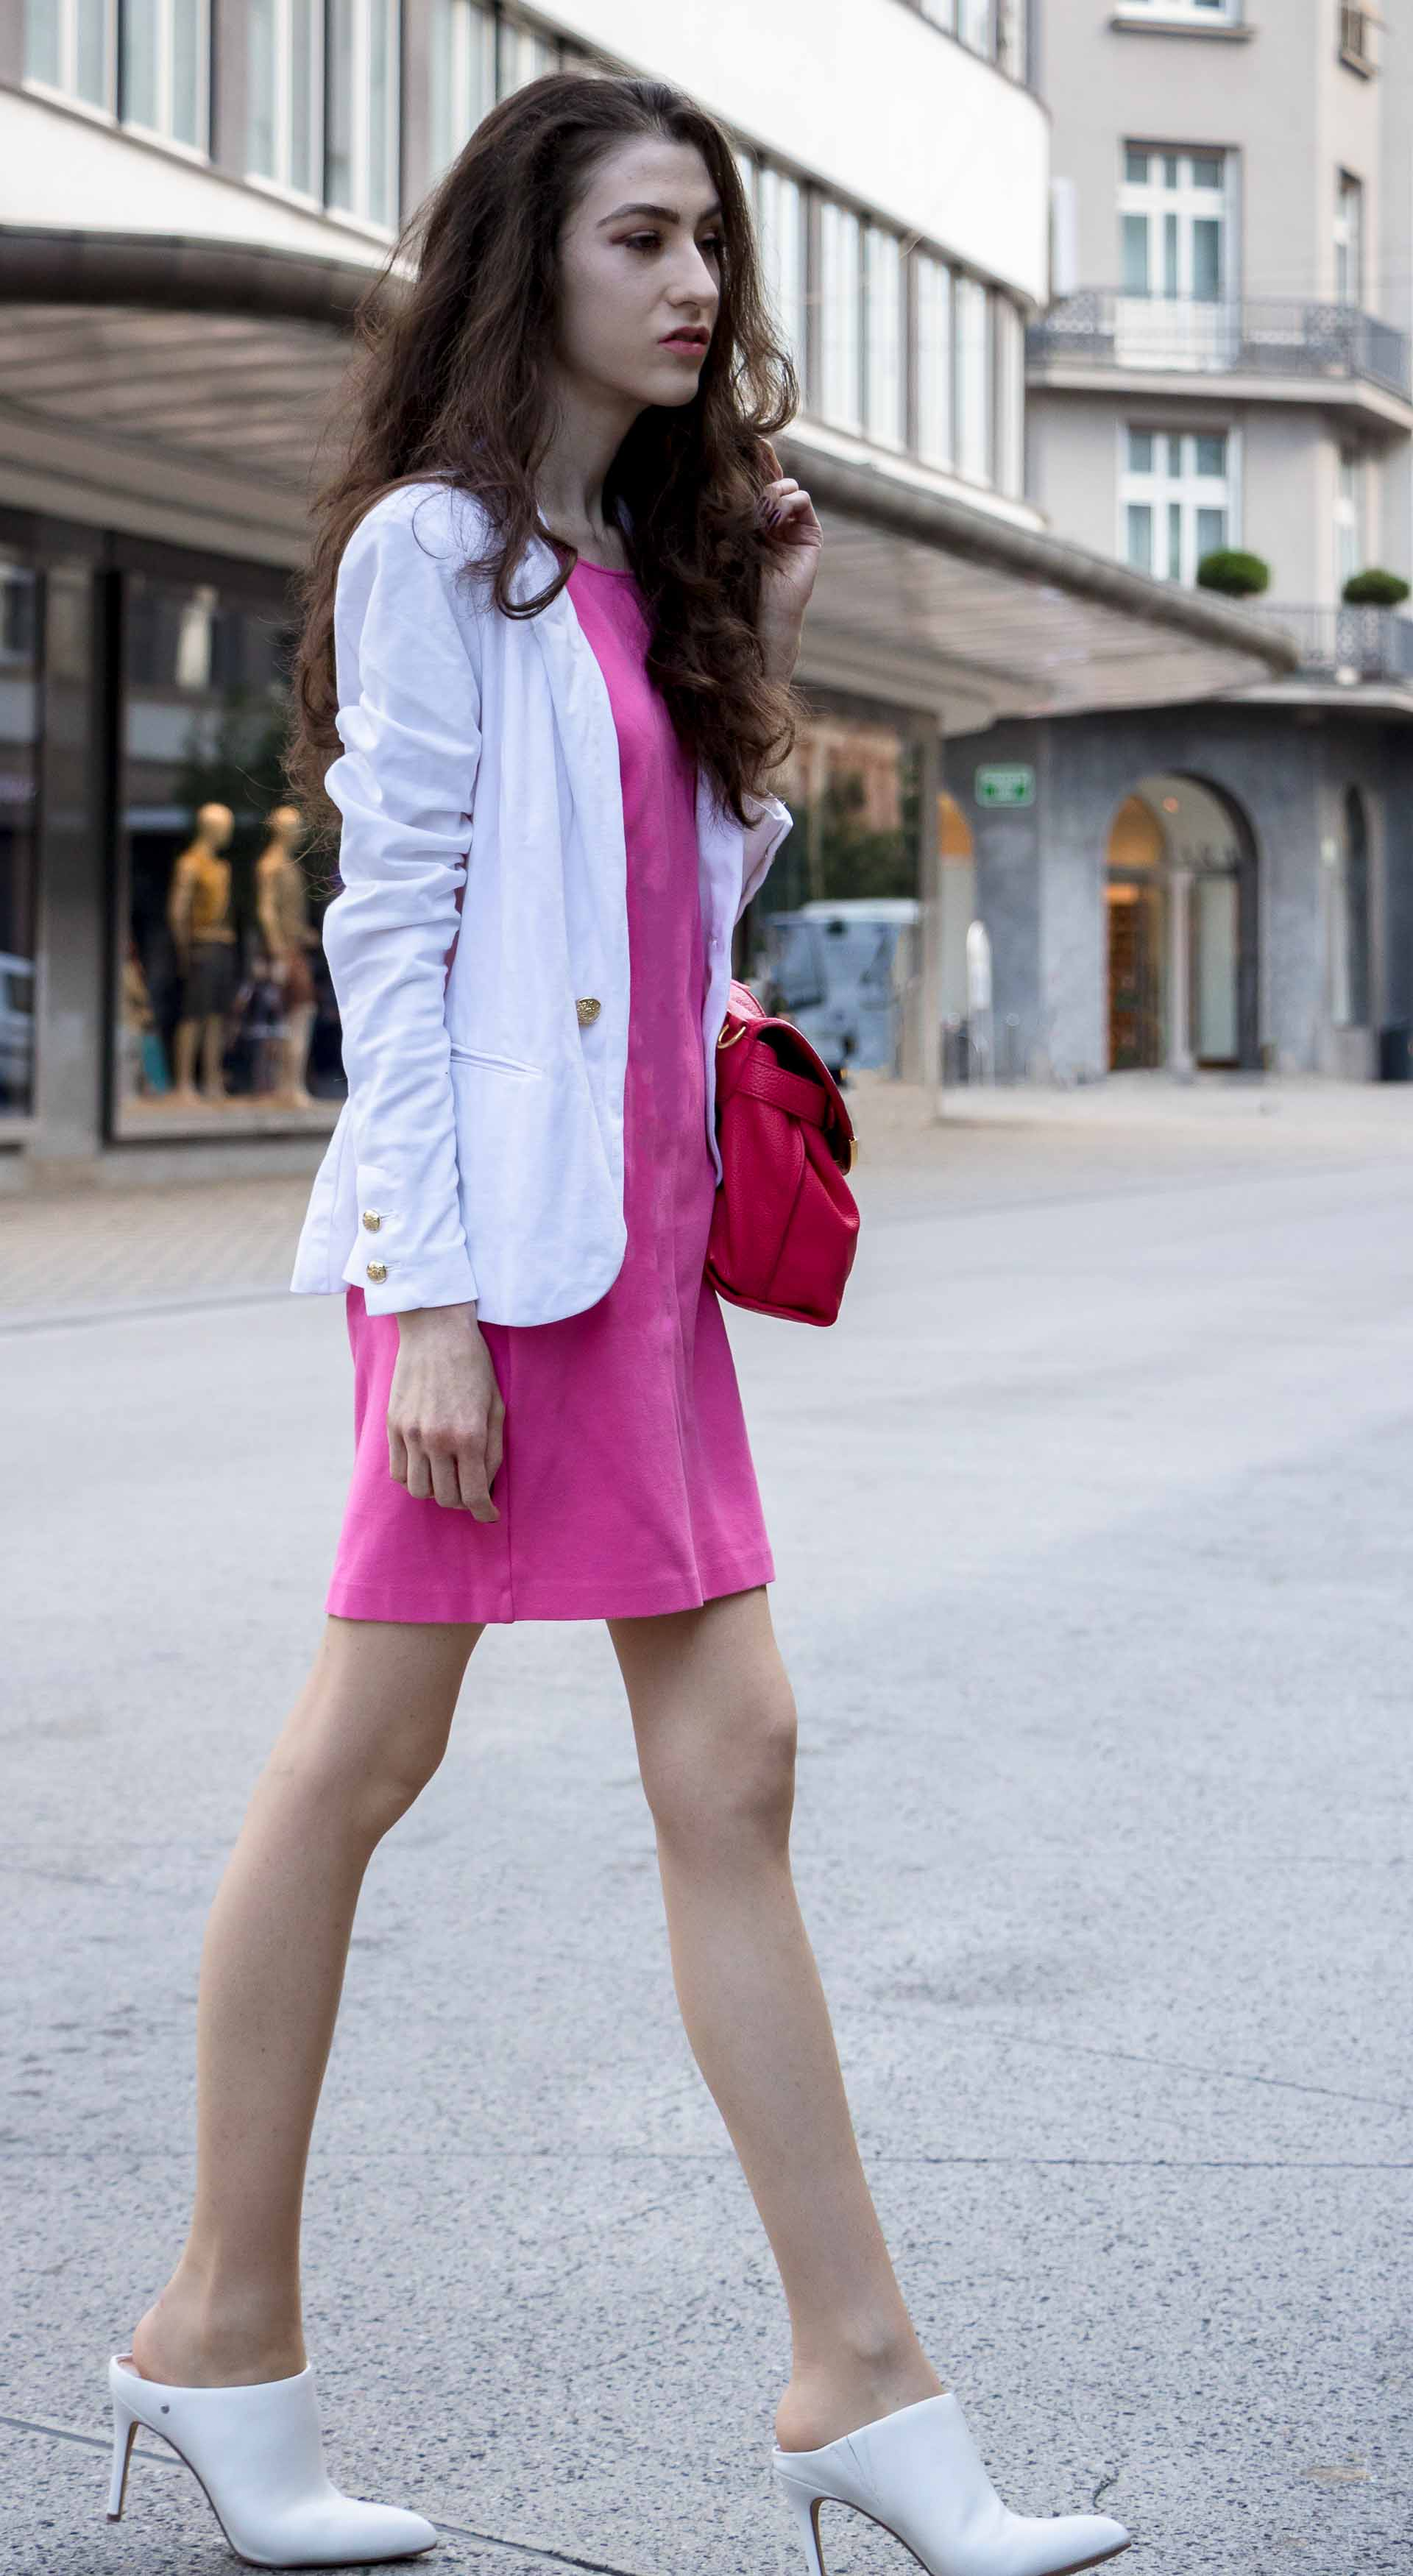 Fashion Blogger Veronika Lipar of Brunette from Wall Street dressed in summer business casual outfit, white high heel close toe mules, pink tailored short dress, white blazer, pink top handle bag crossing the street in Ljubljana